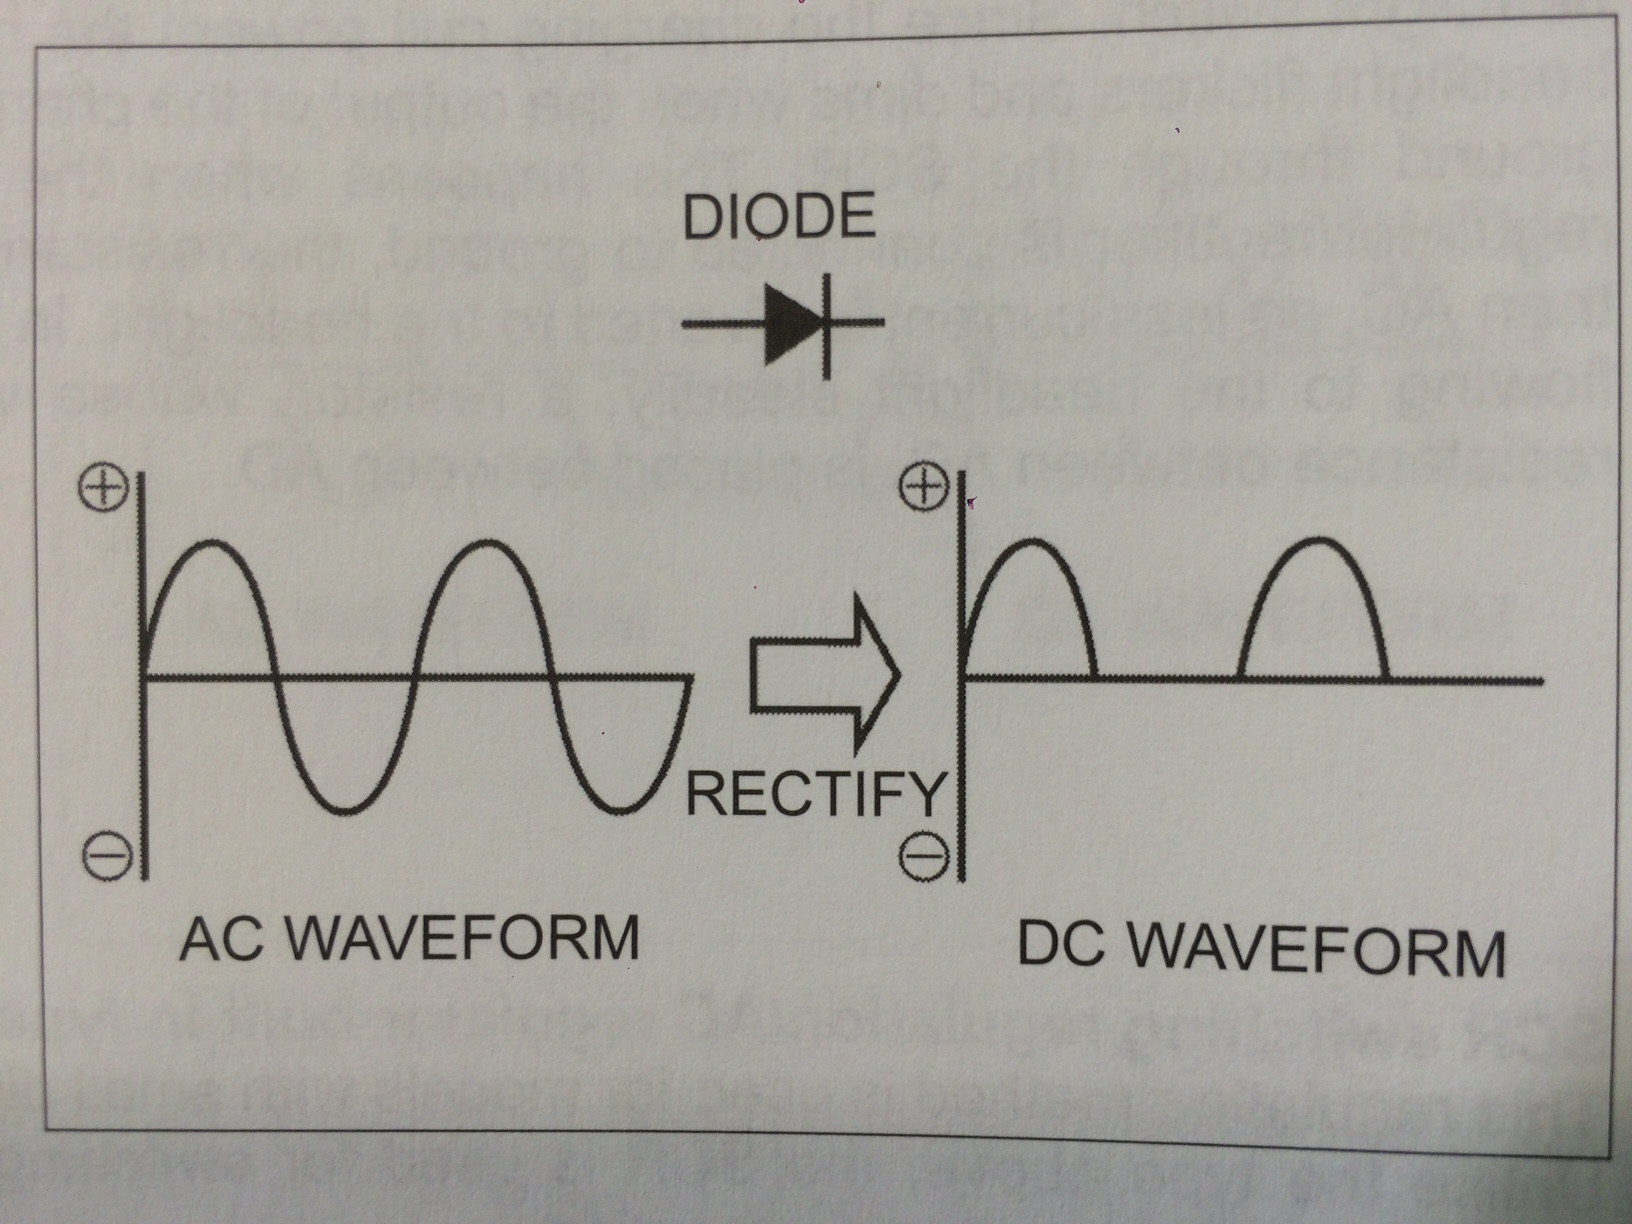 hight resolution of a diode in it s simplest form is considered to be a one way valve for electricity it allows voltage to pass through it but does not allow voltage to